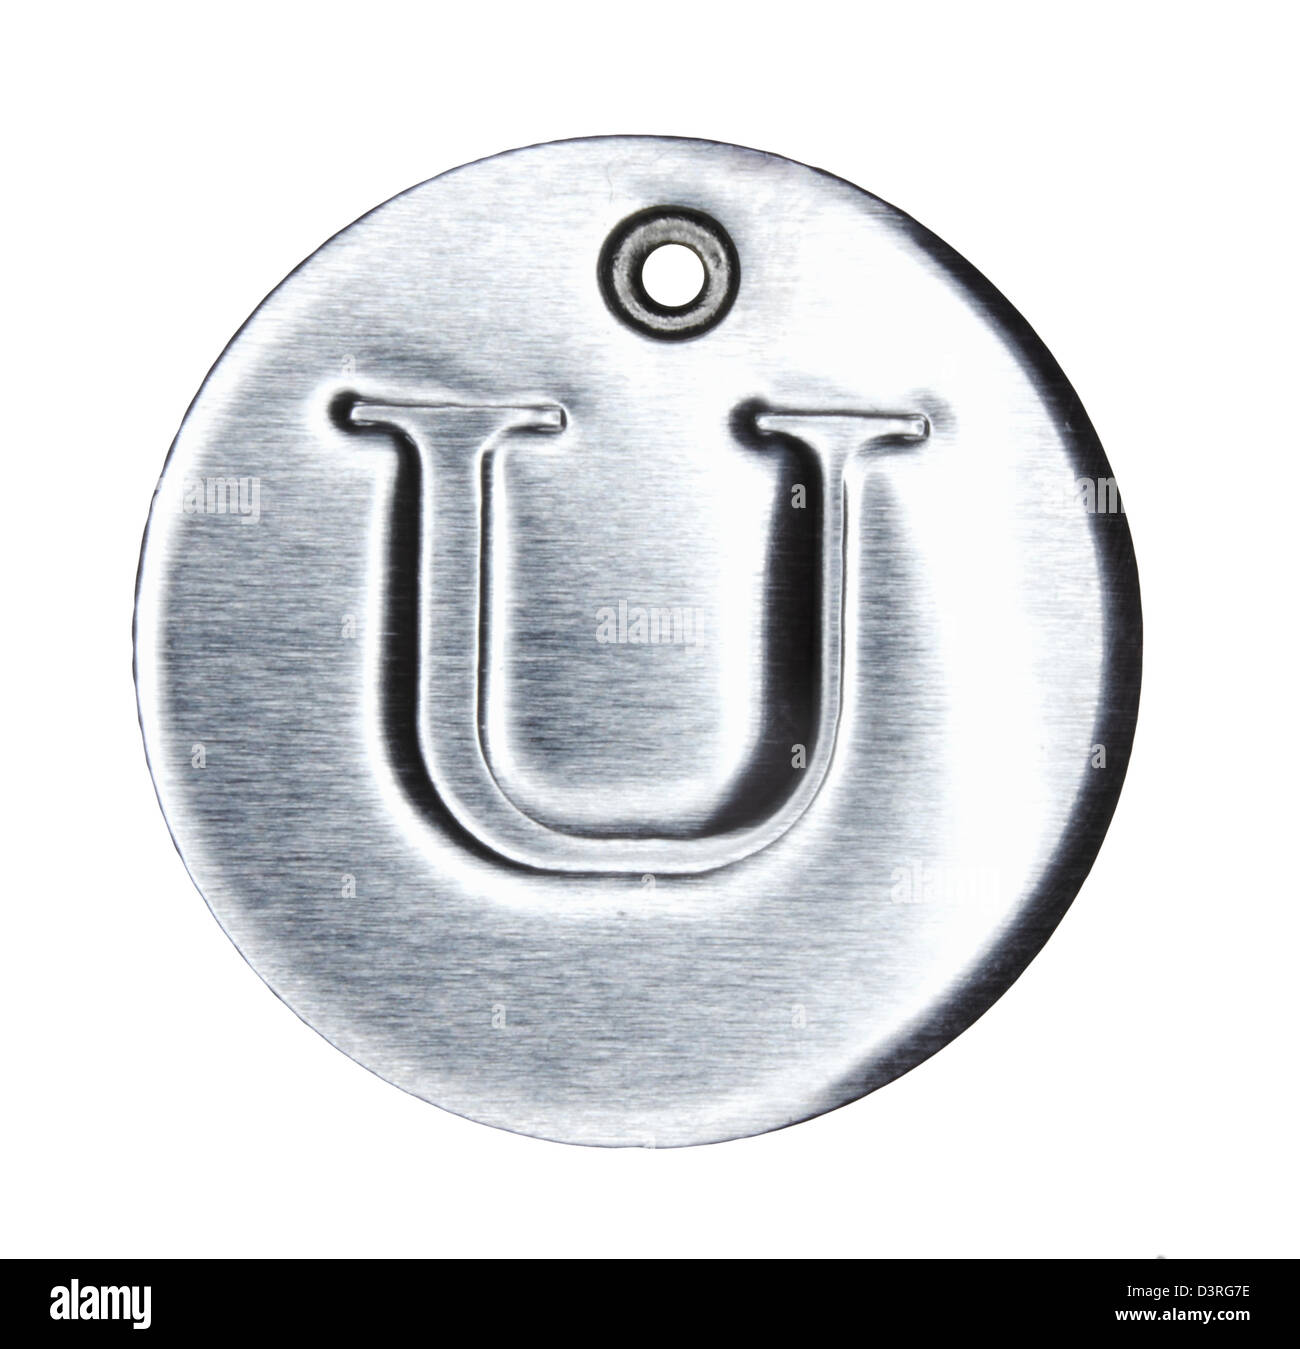 Brushed metal letter of the alphabet U - Stock Image